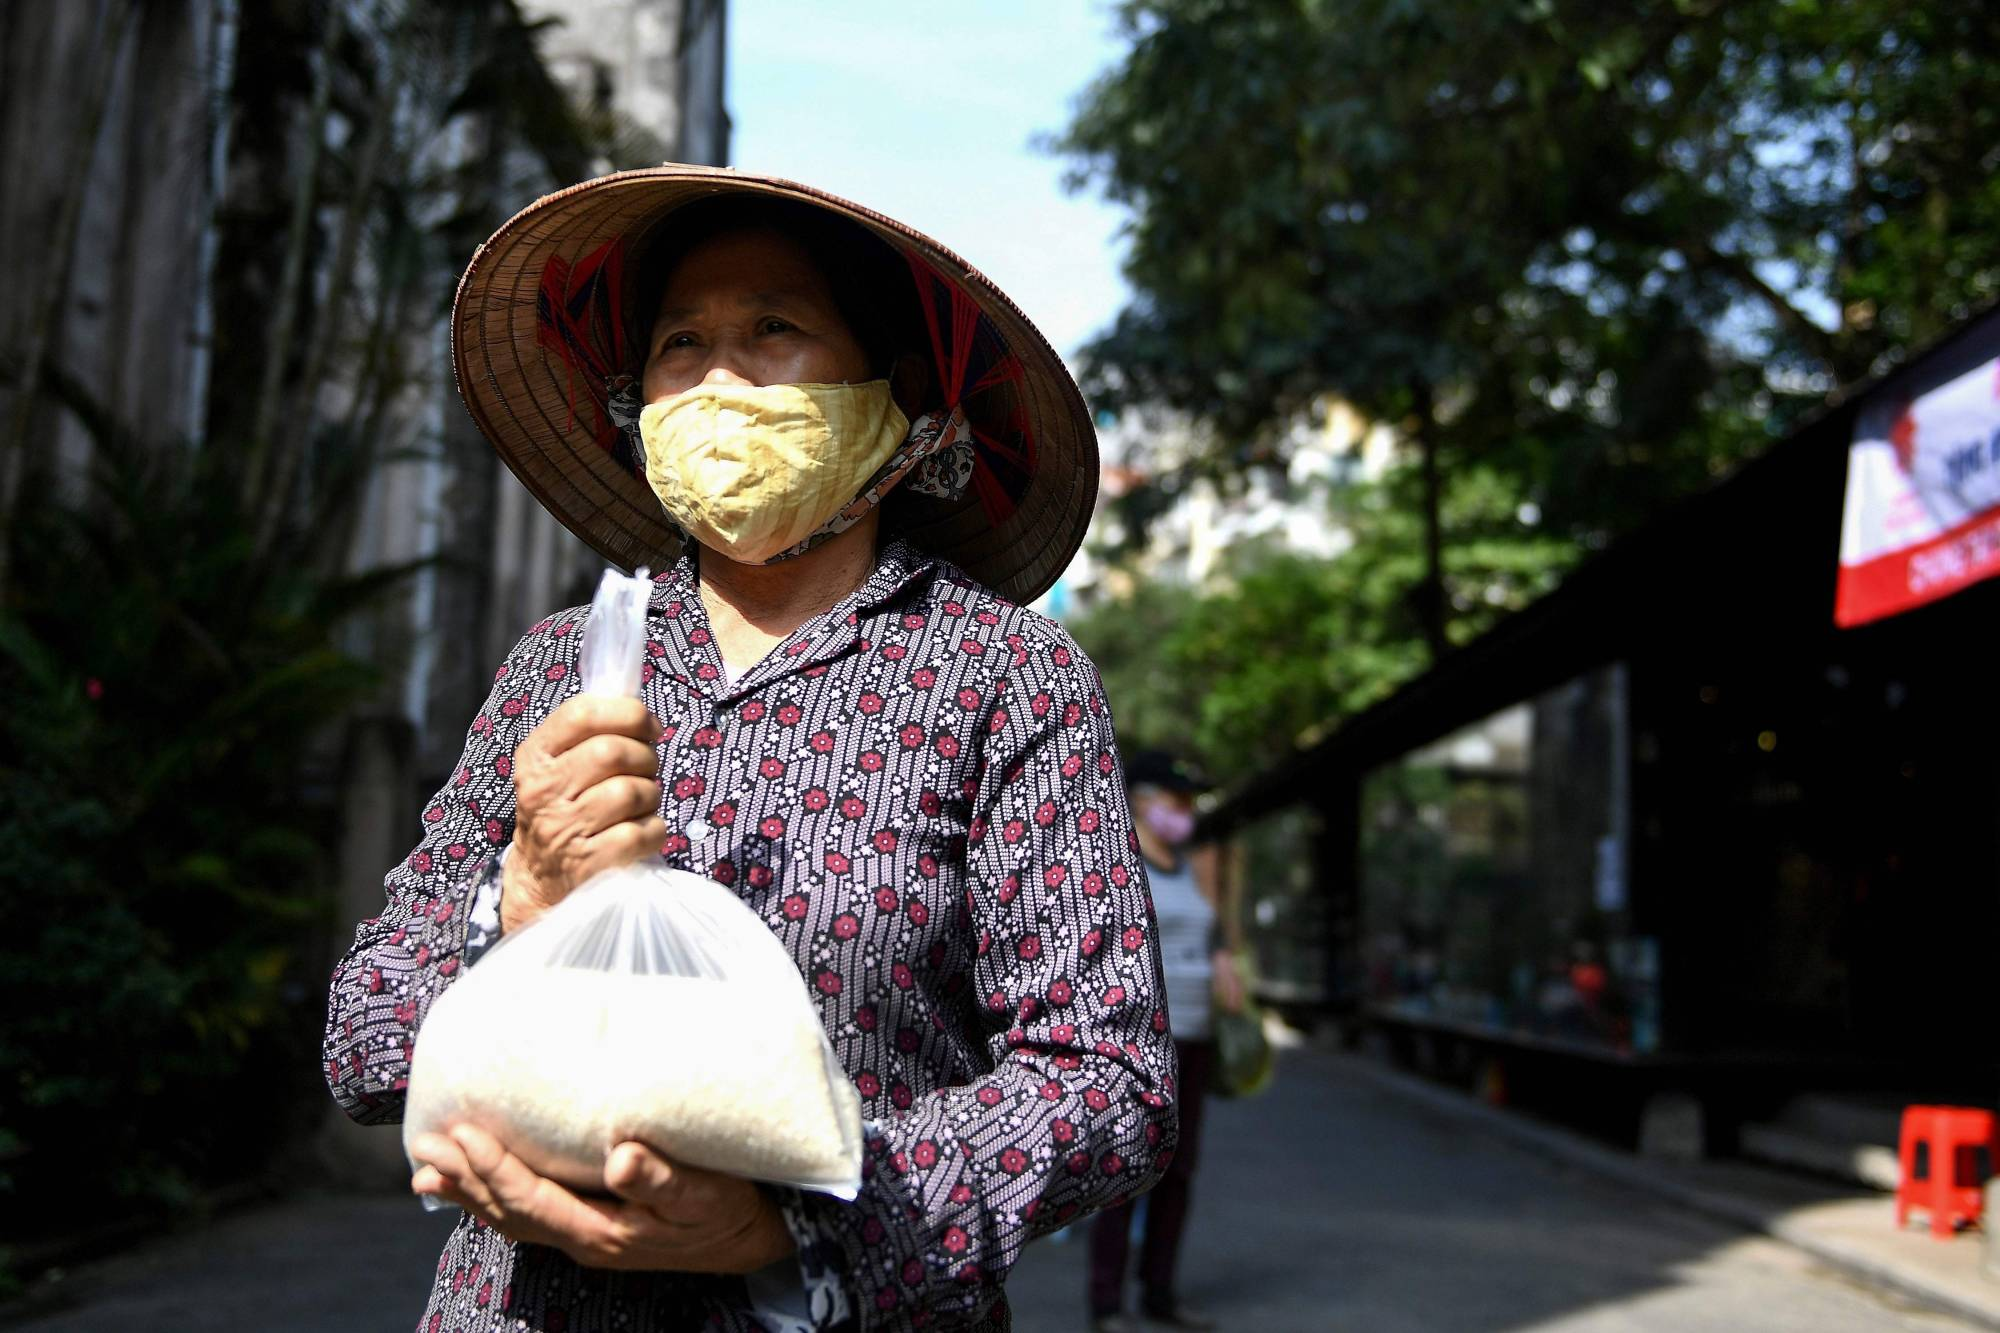 The coronavirus pandemic has threatened businesses around the globe, but the lack of digital know-how has exacerbated the risk for small businesses, many led by women in Southeast Asia. | AFP-JIJI